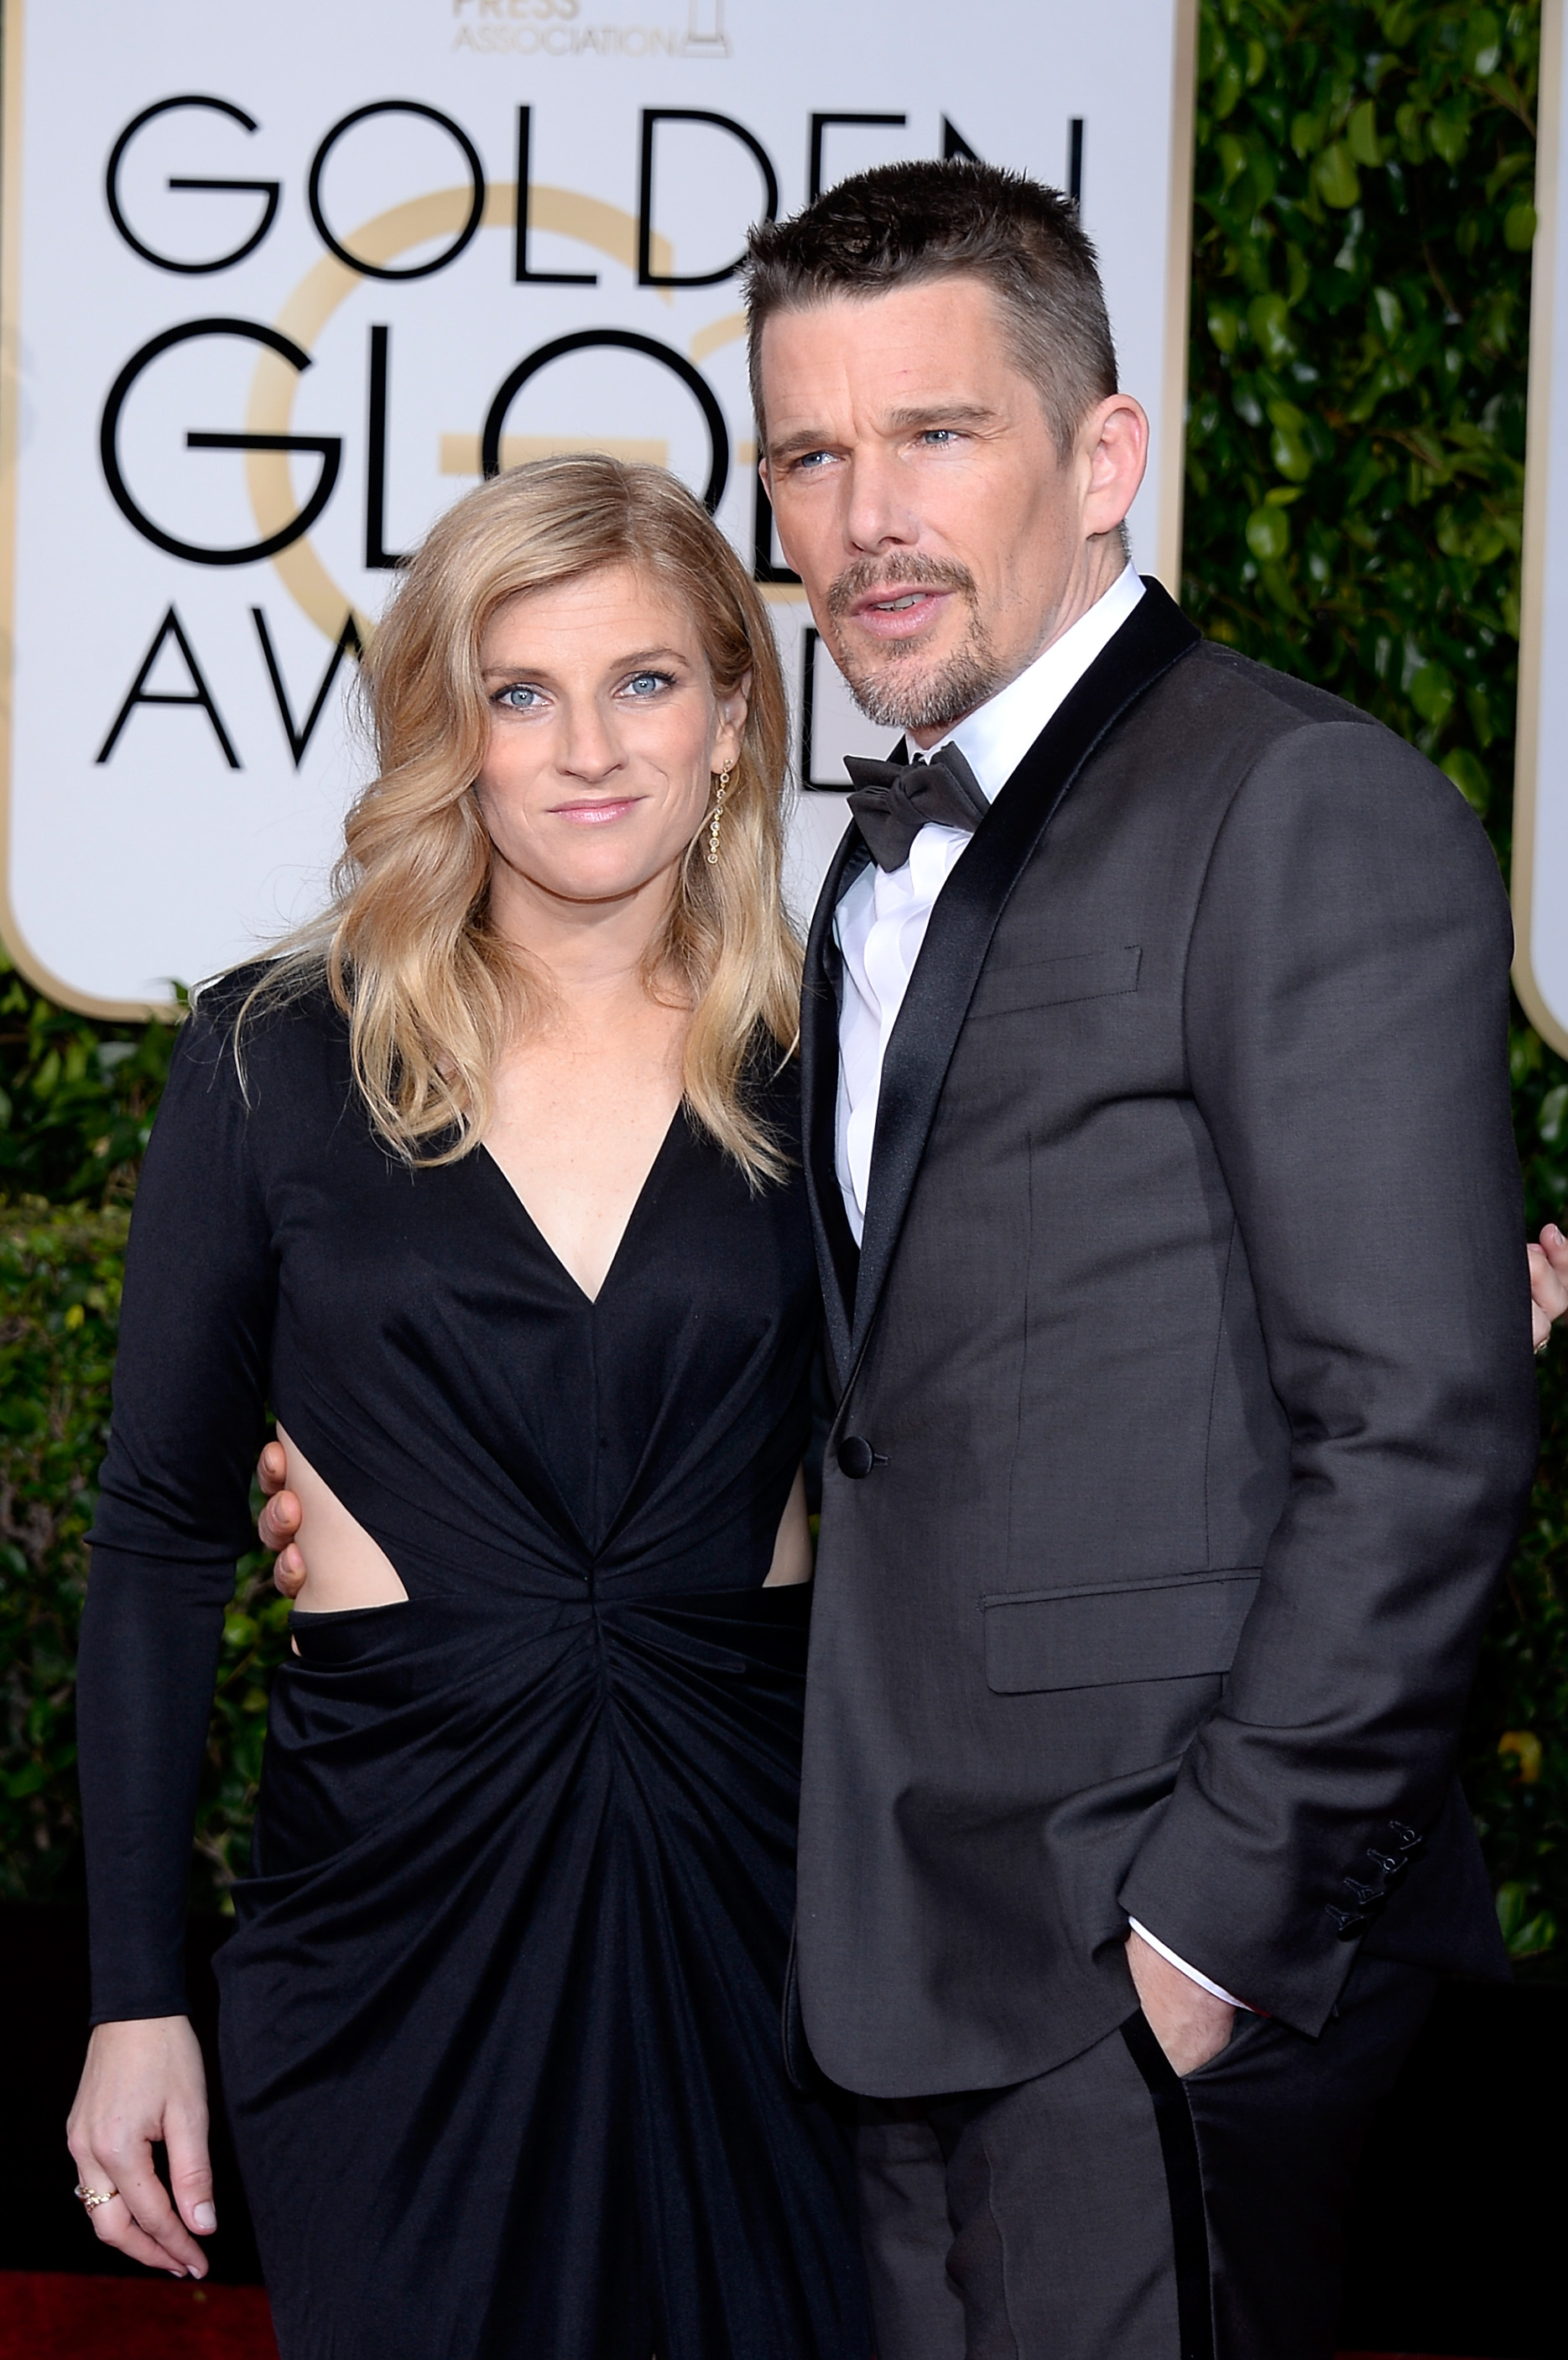 Ethan Hawke and Ryan Shawhughes arrive to the 72nd Annual Golden Globe Awards held at the Beverly Hilton Hotel on January 11, 2015.